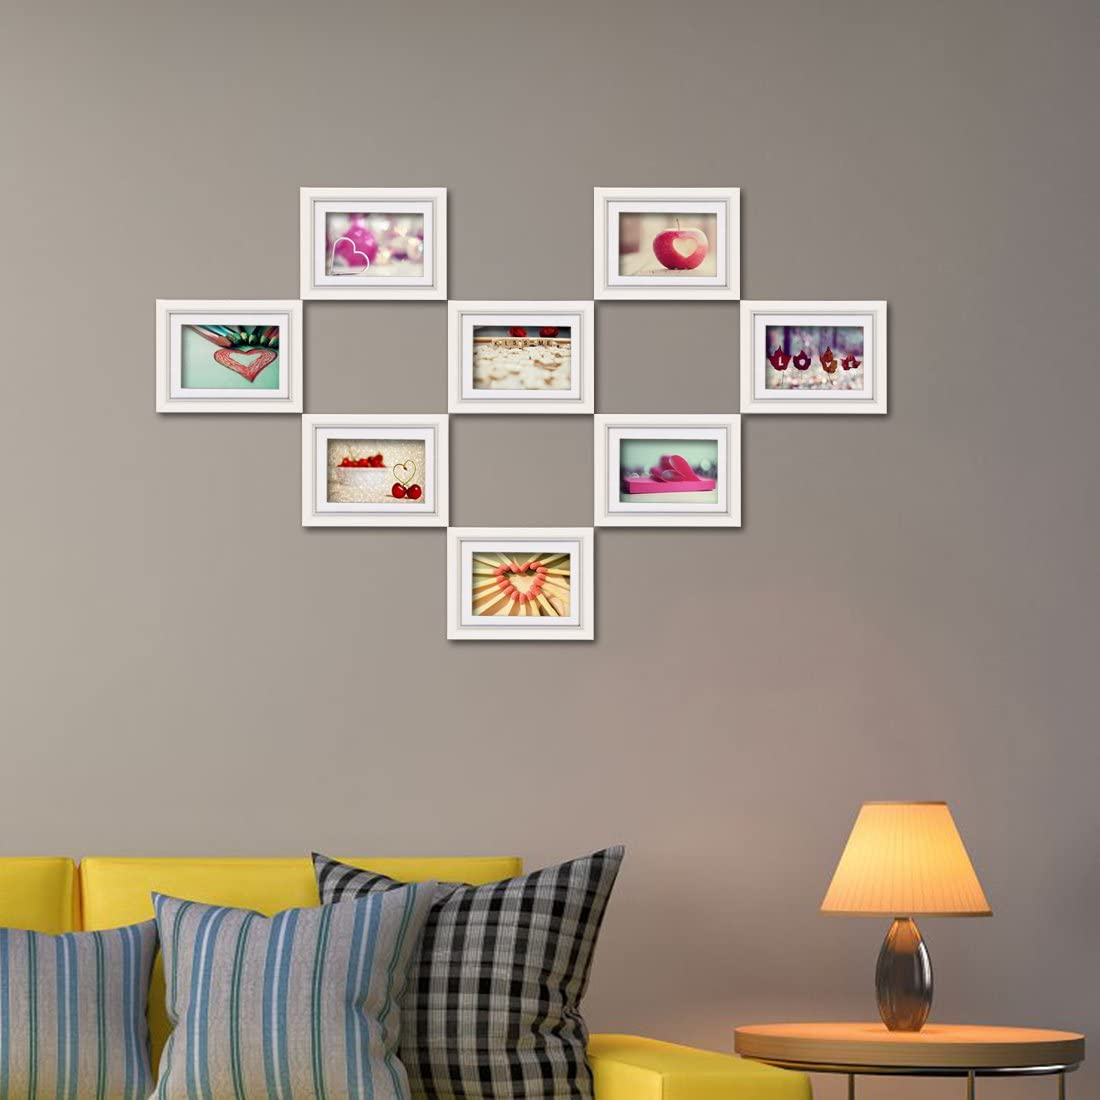 5x7 Picture Frame Set Hold 5 by 7 inch Prints Wall Mounting White Photo Frames Set of 8